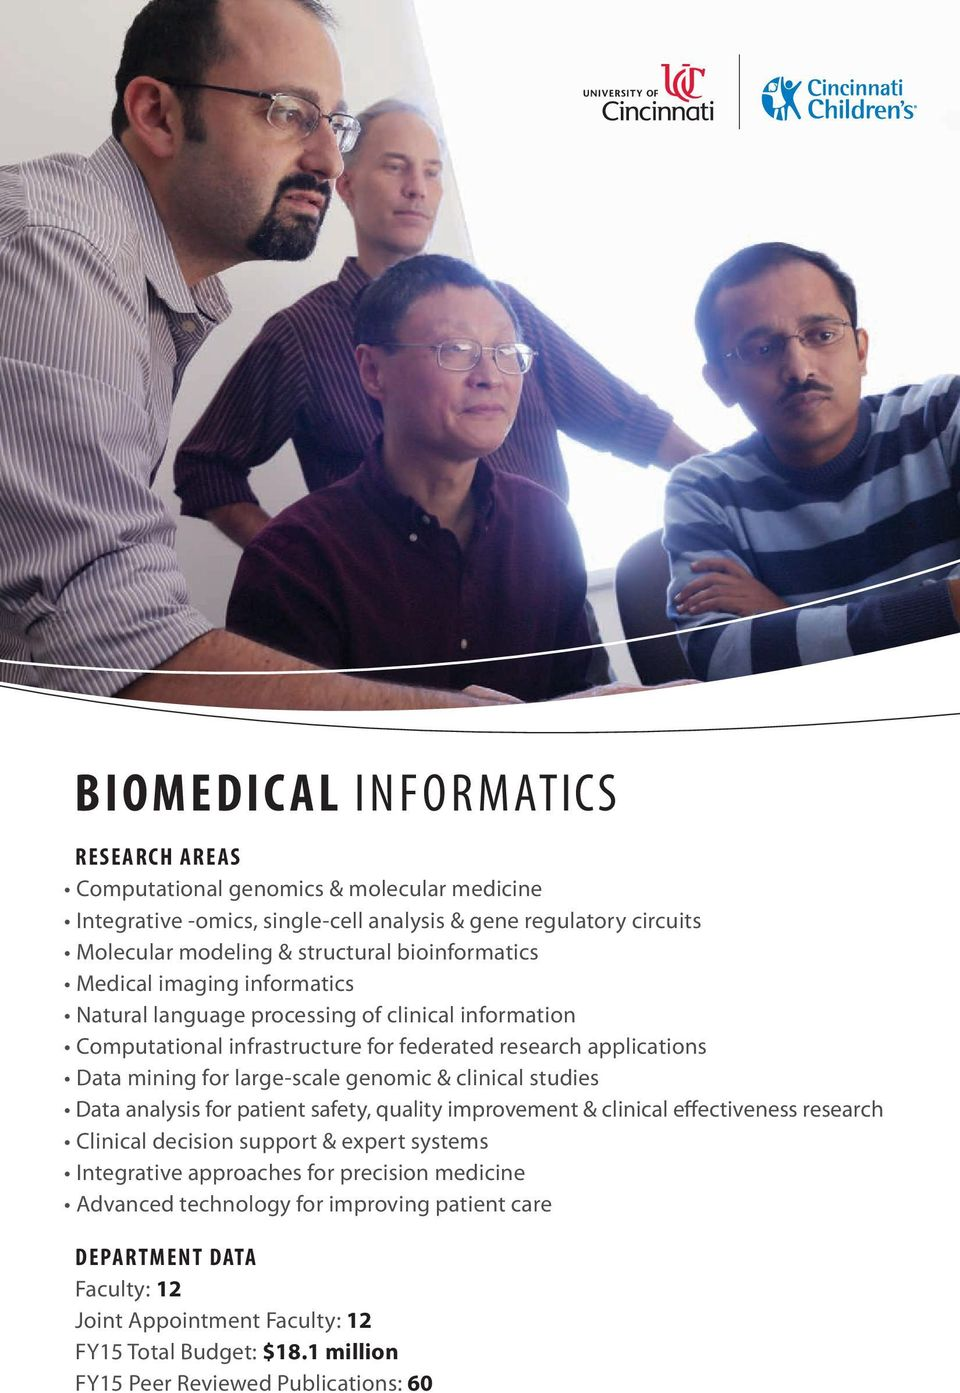 large-scale genomic & clinical studies Data analysis for patient safety, quality improvement & clinical effectiveness research Clinical decision support & expert systems Integrative